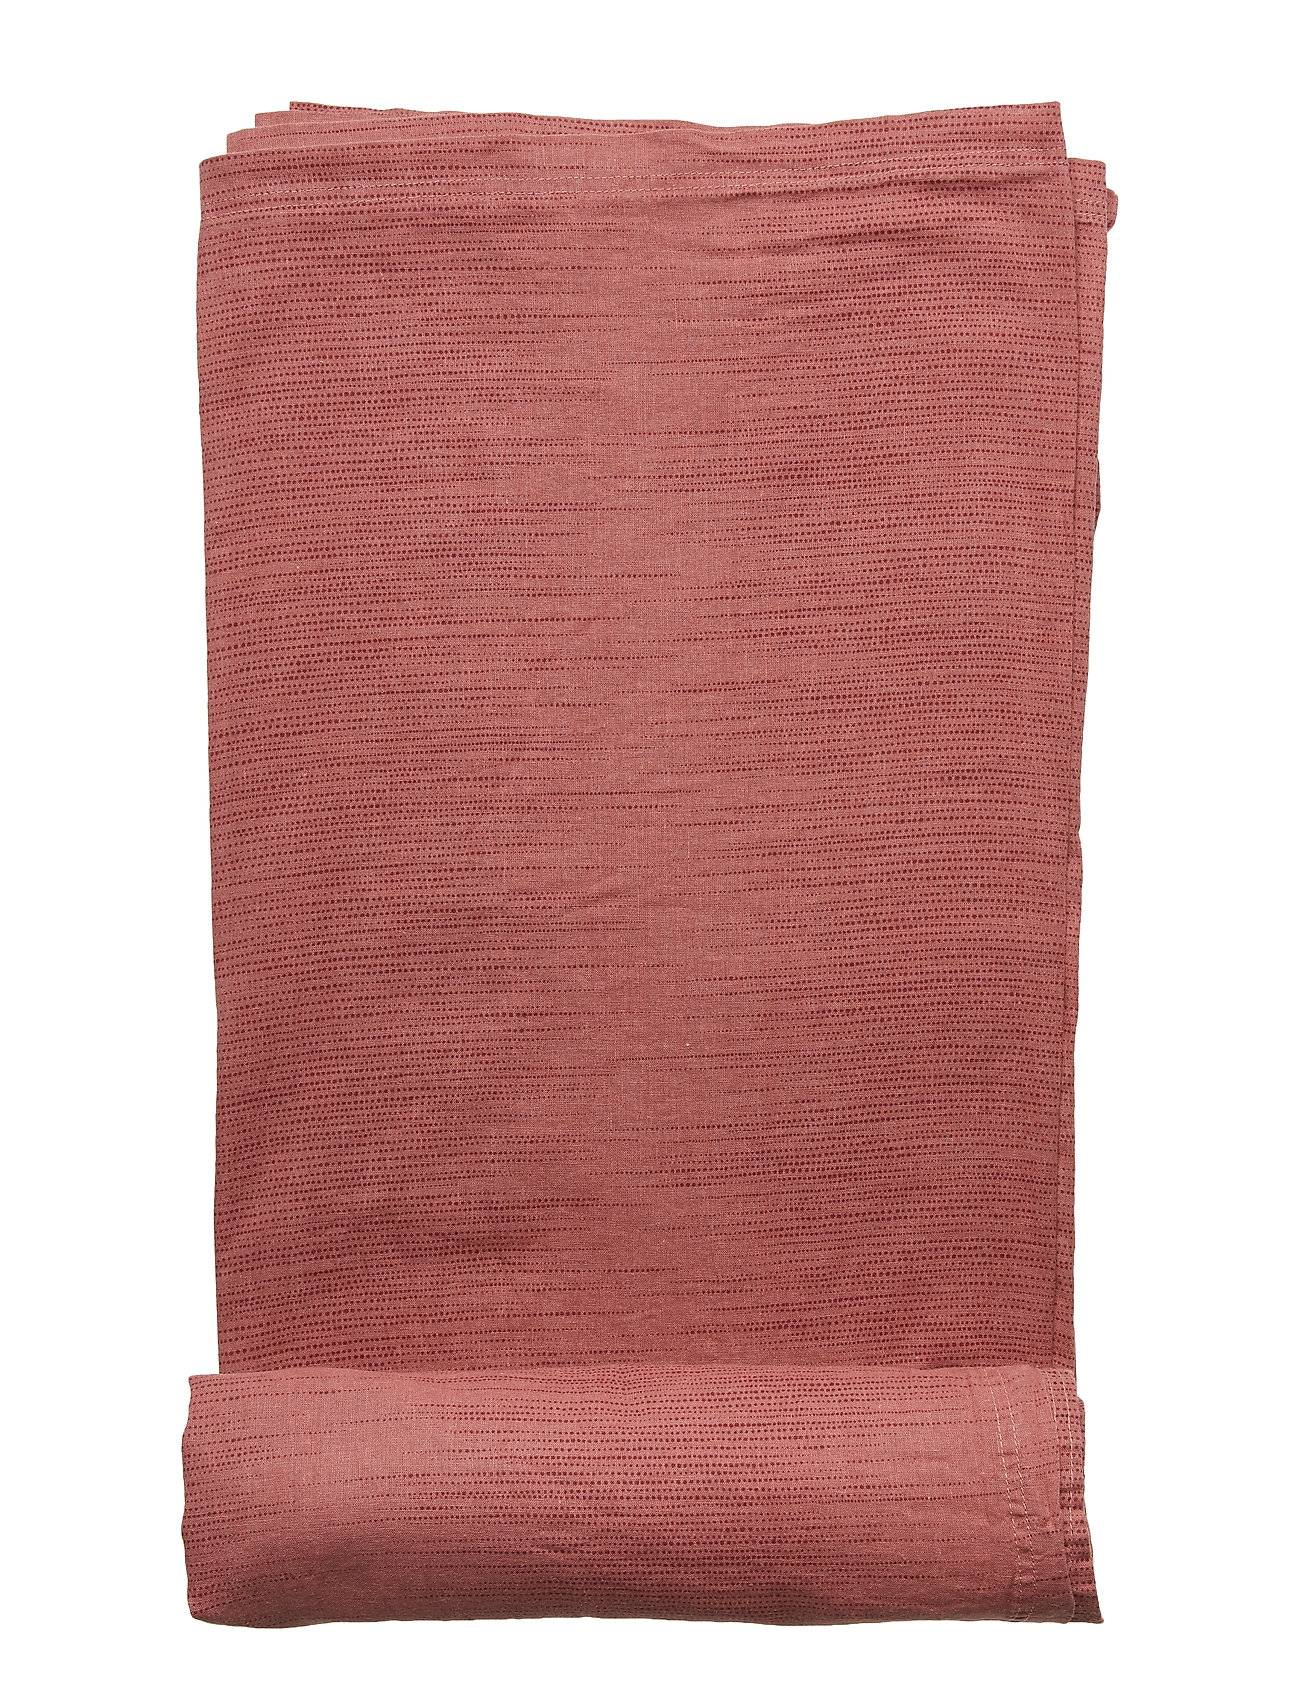 Gripsholm Table Cloth Leo Home Kitchen Tablecloth Vaaleanpunainen Gripsholm